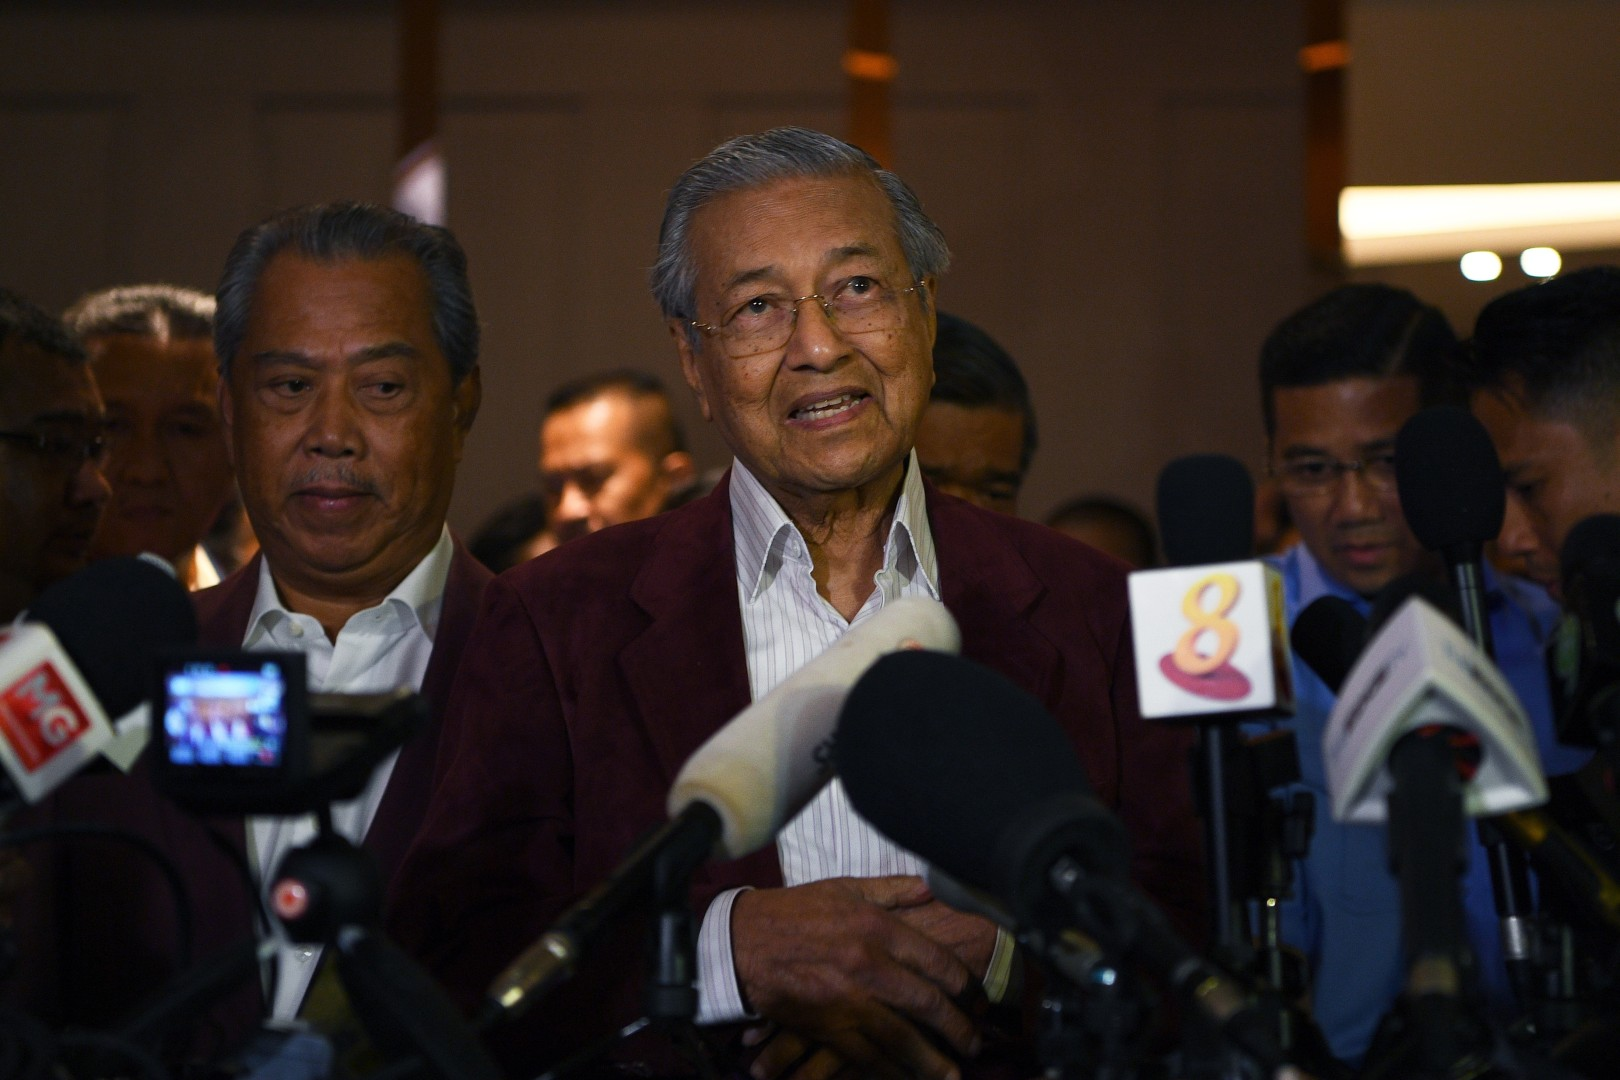 a9decb253 Malaysia election live  Mahathir Mohamad claims victory